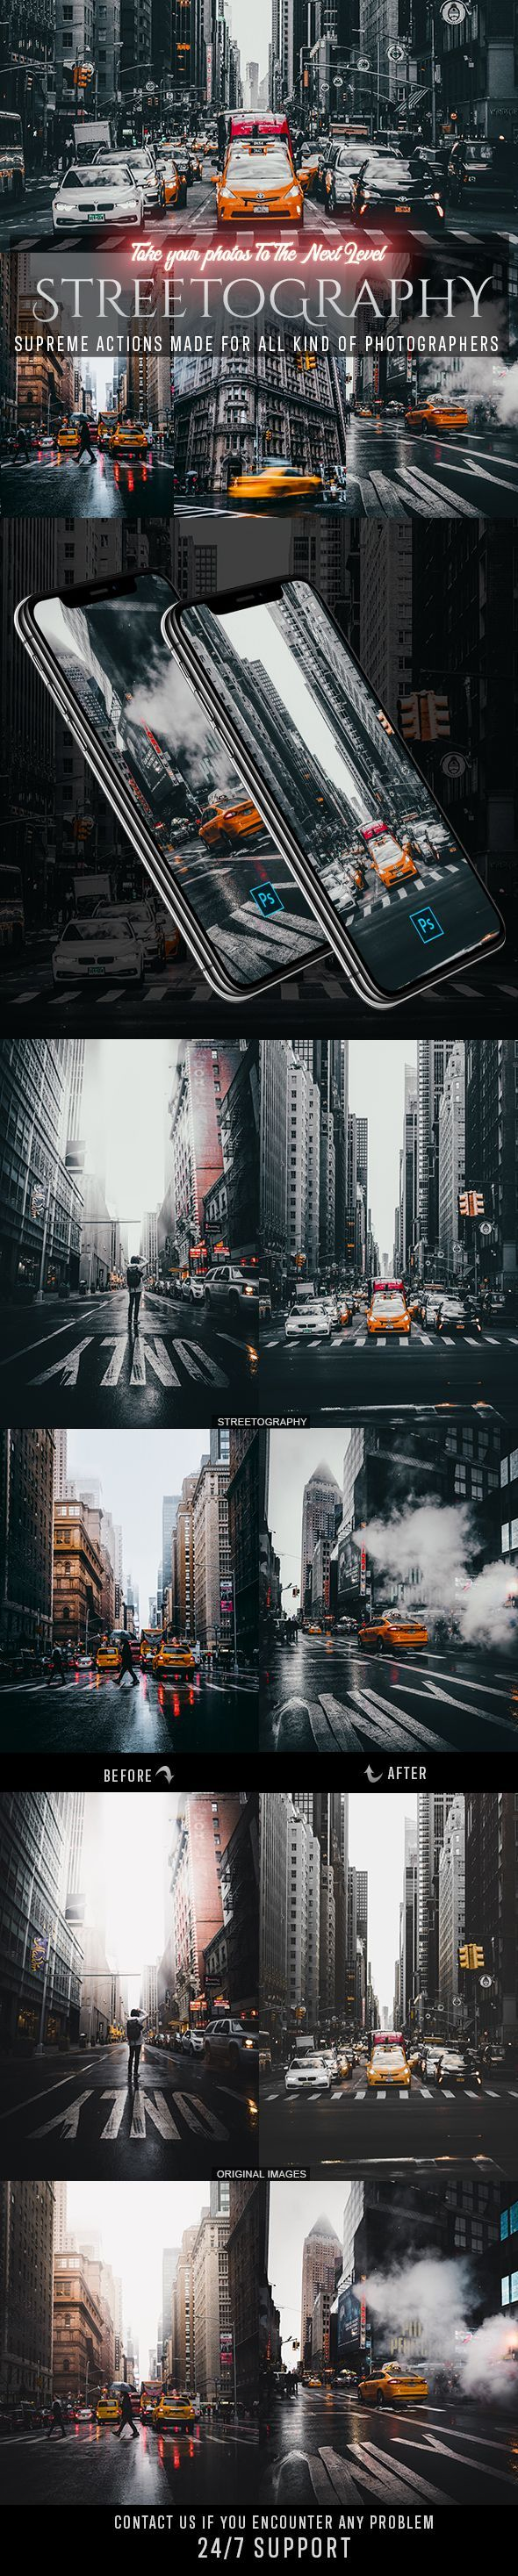 Streetography Photoshop Actions - Creative photography - #Actions #Creative #Creativephotography #Photography #Photoshop #Streetography